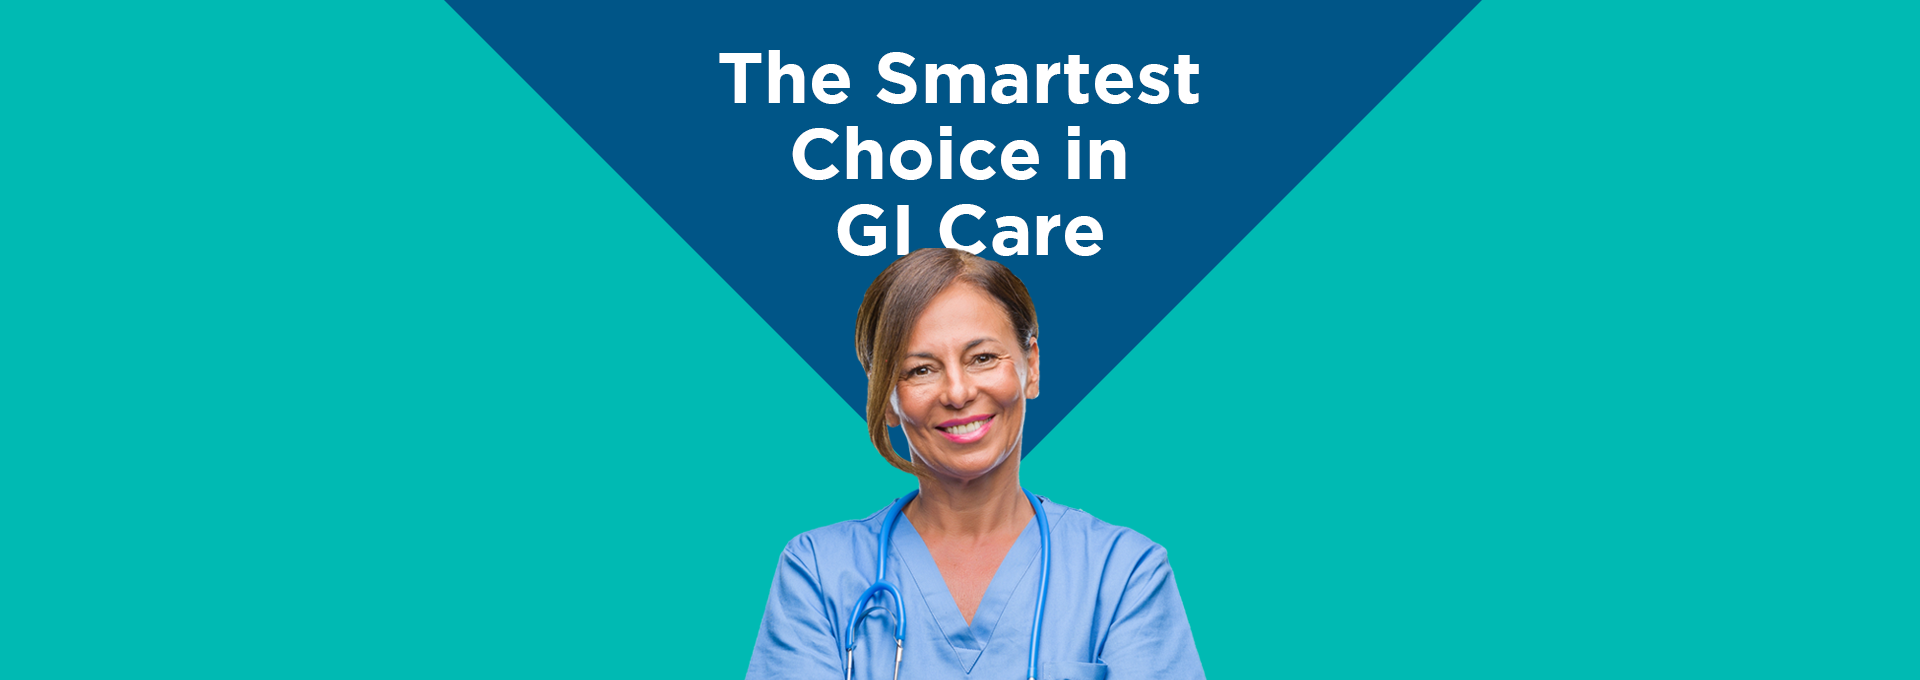 Smartest Choice in GI Care